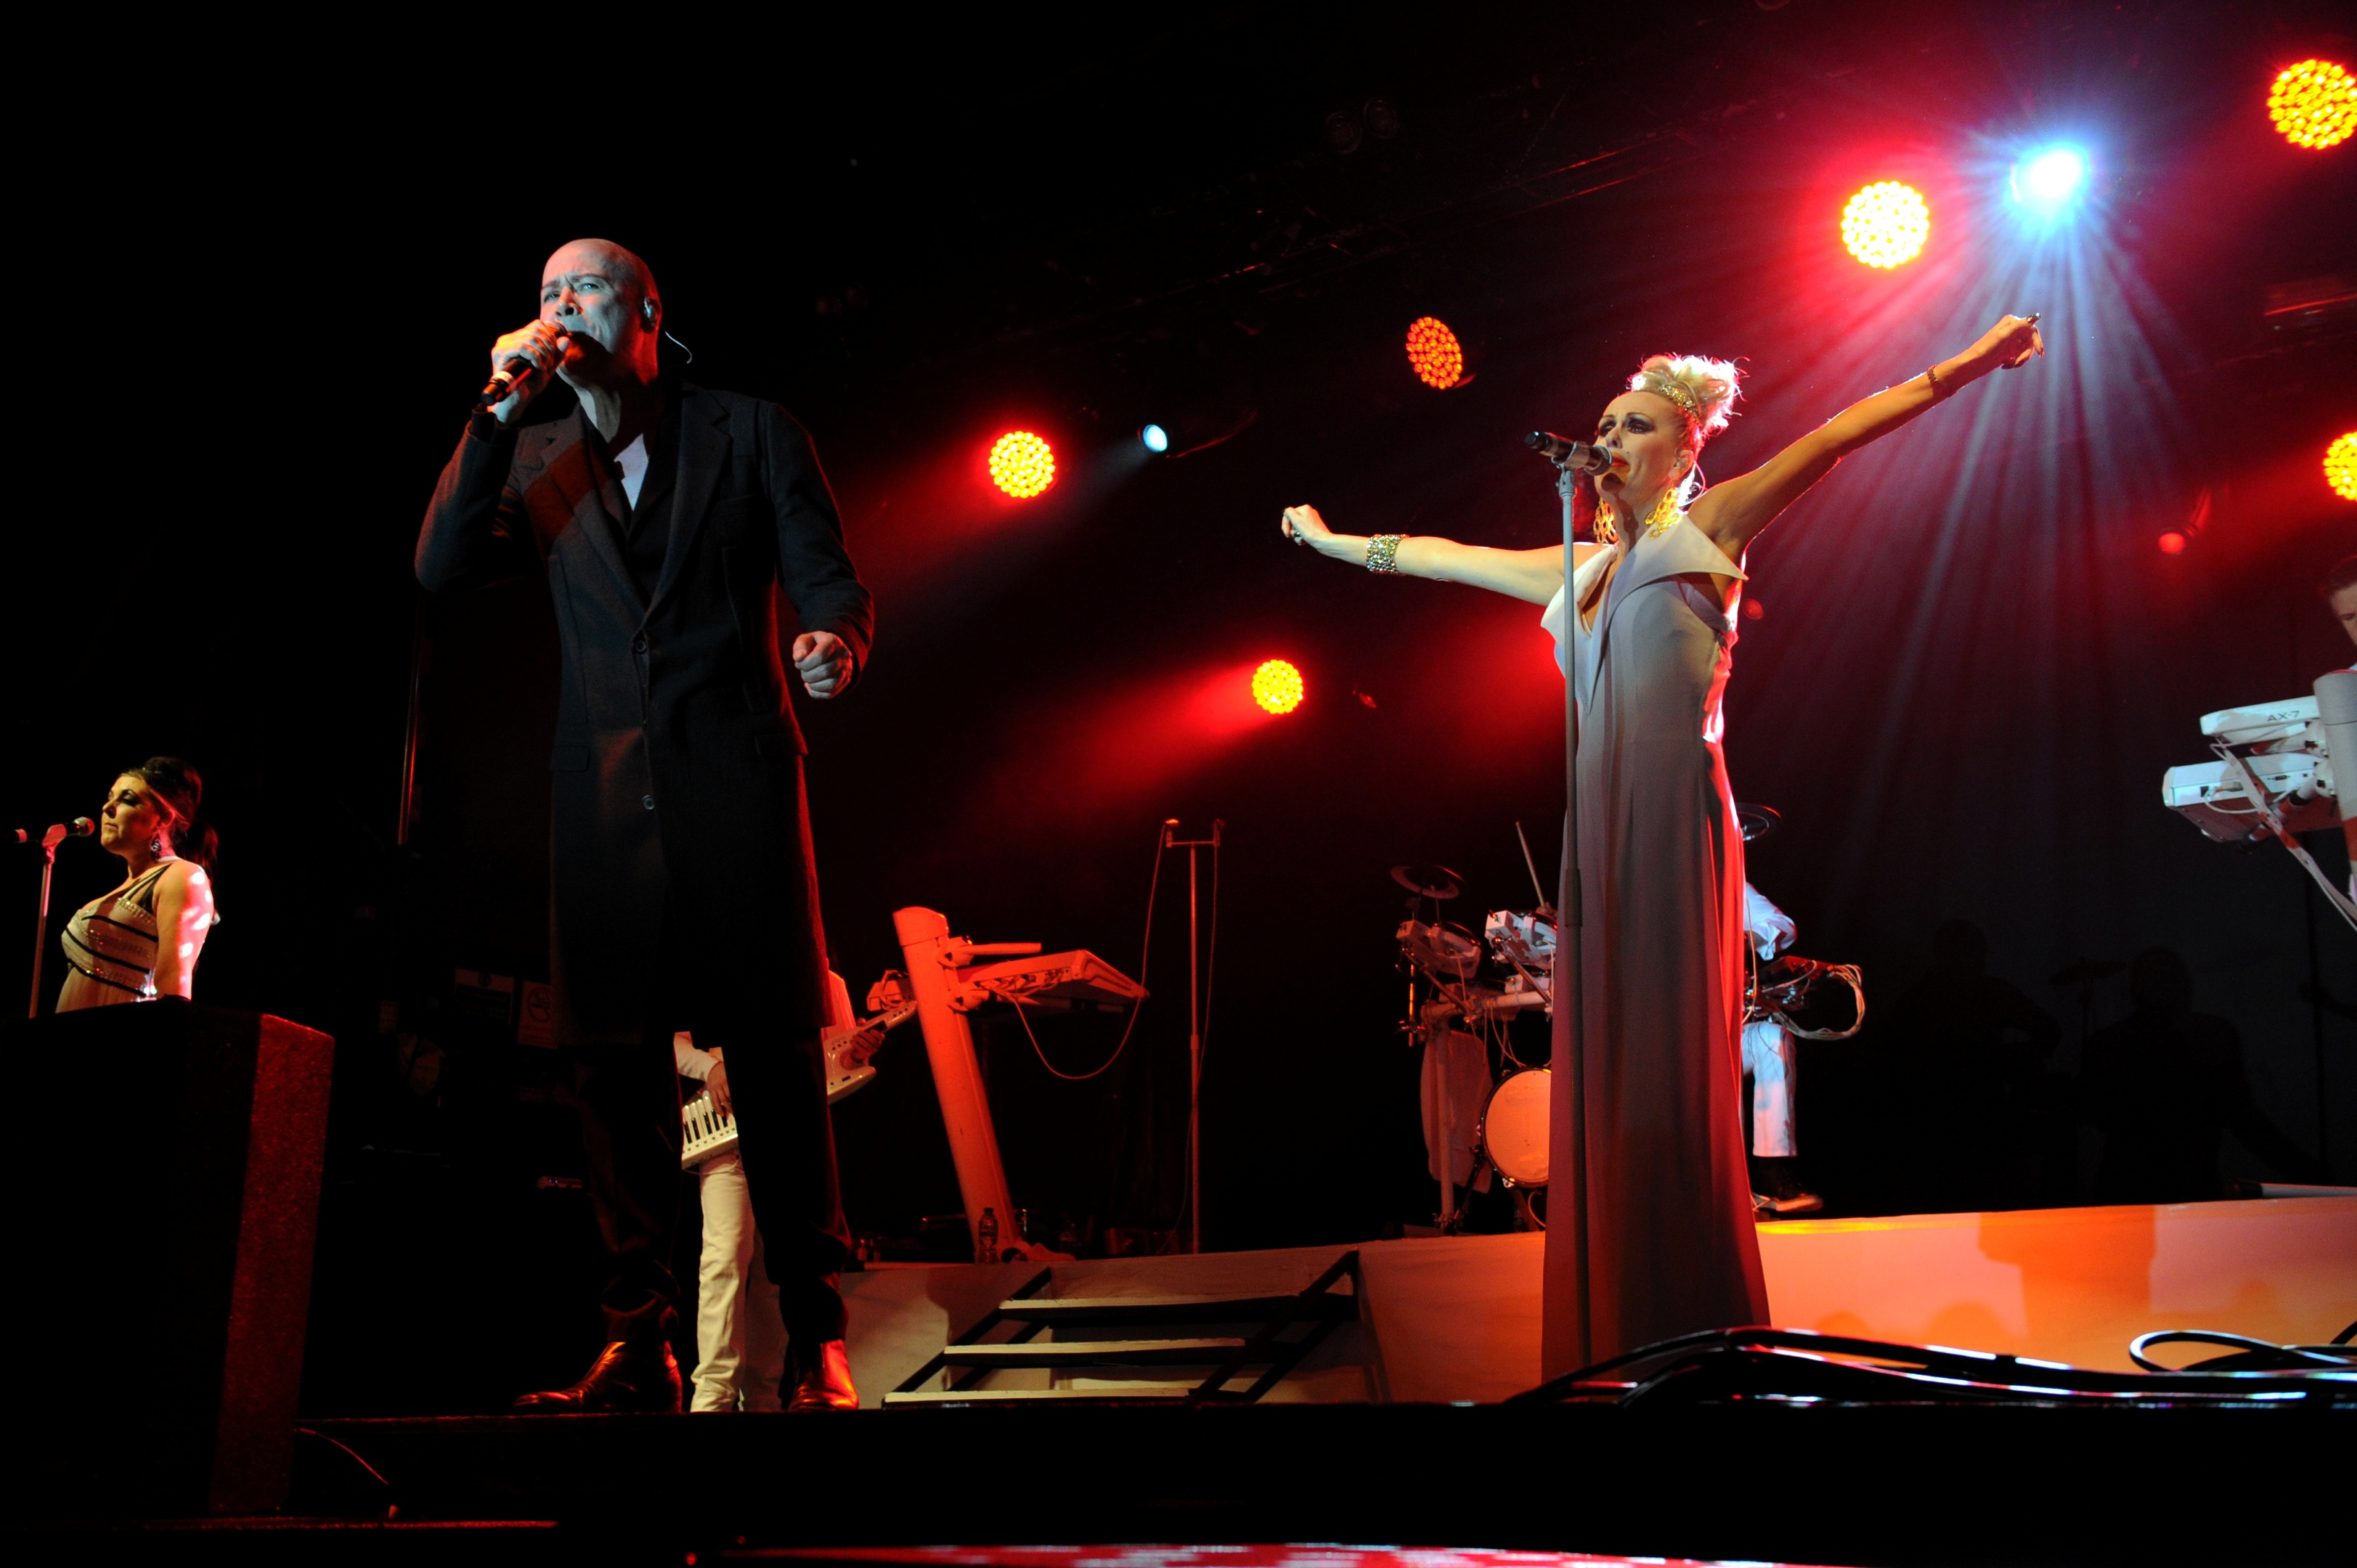 The Human League headlined Stonehaven's 2014 New Year's Eve concert.